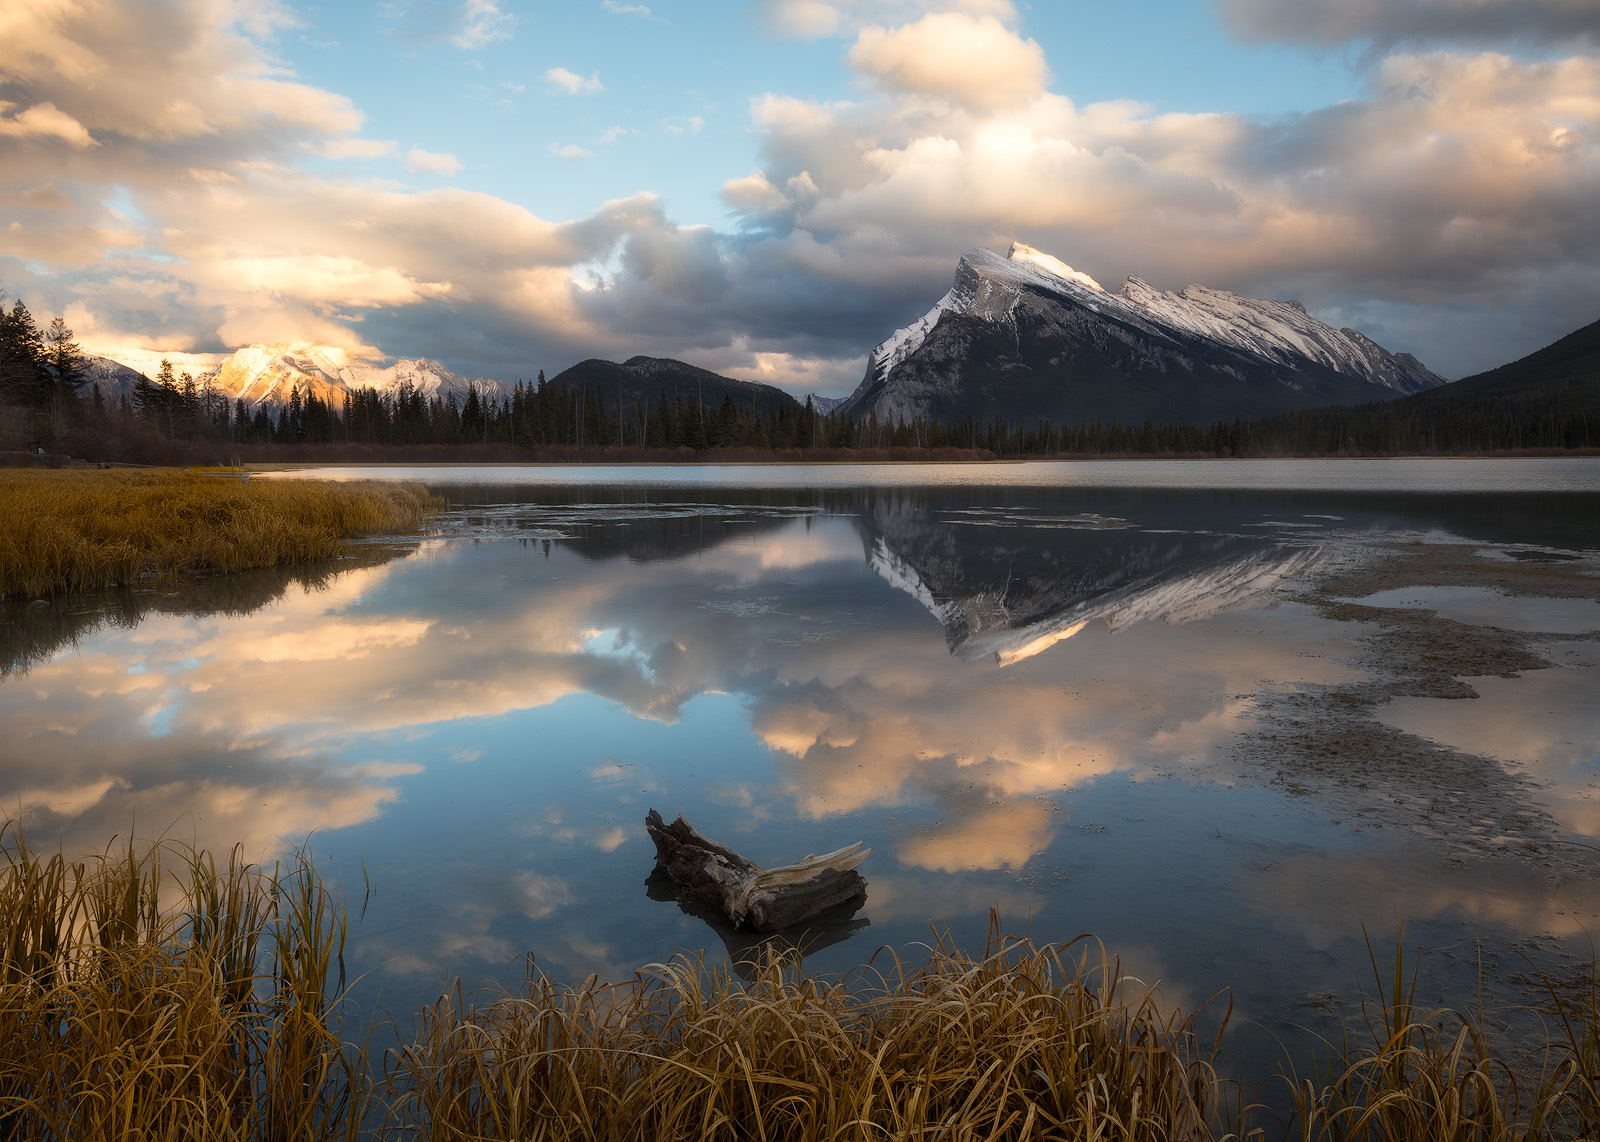 reflection,canadian rockies,alberta,canada,banff,bannf,banff national park,landscape,rockies,vermillion,lakes,mount rundle, photo